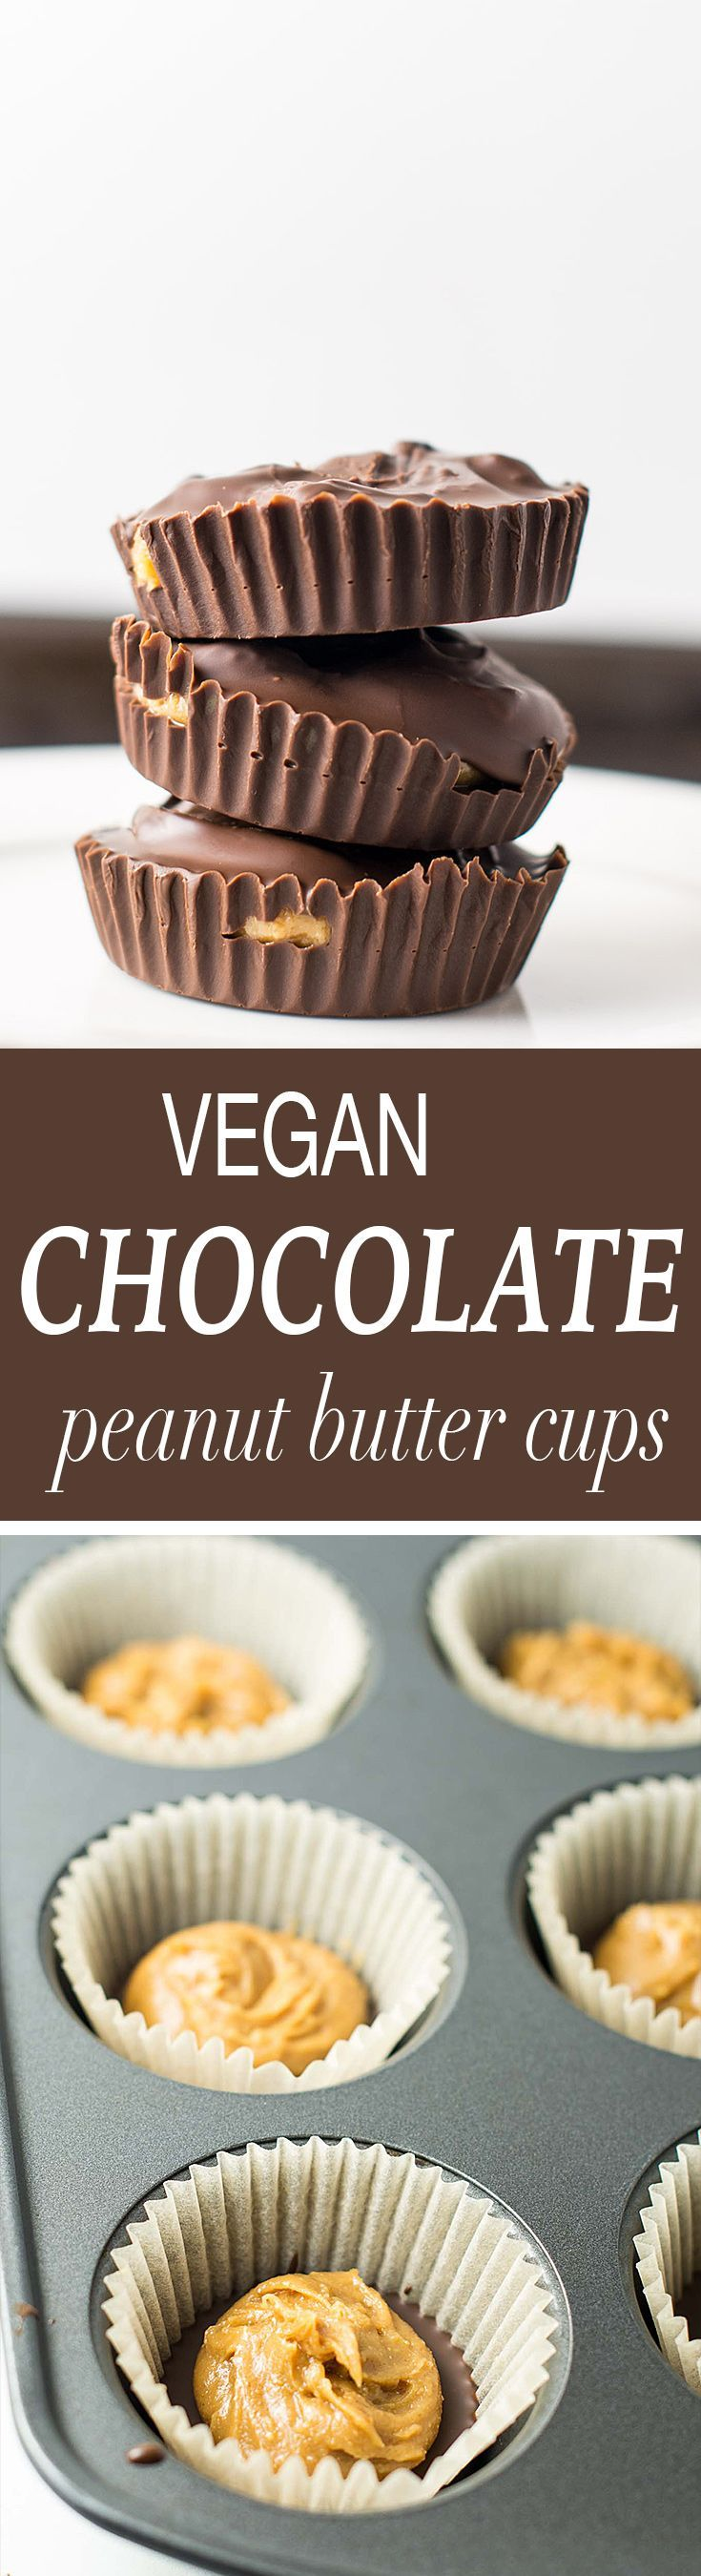 easy vegan chocolate peanut butter cups made using just 7 ingredients. These taste even better than Reese's cups and are highly addictive!